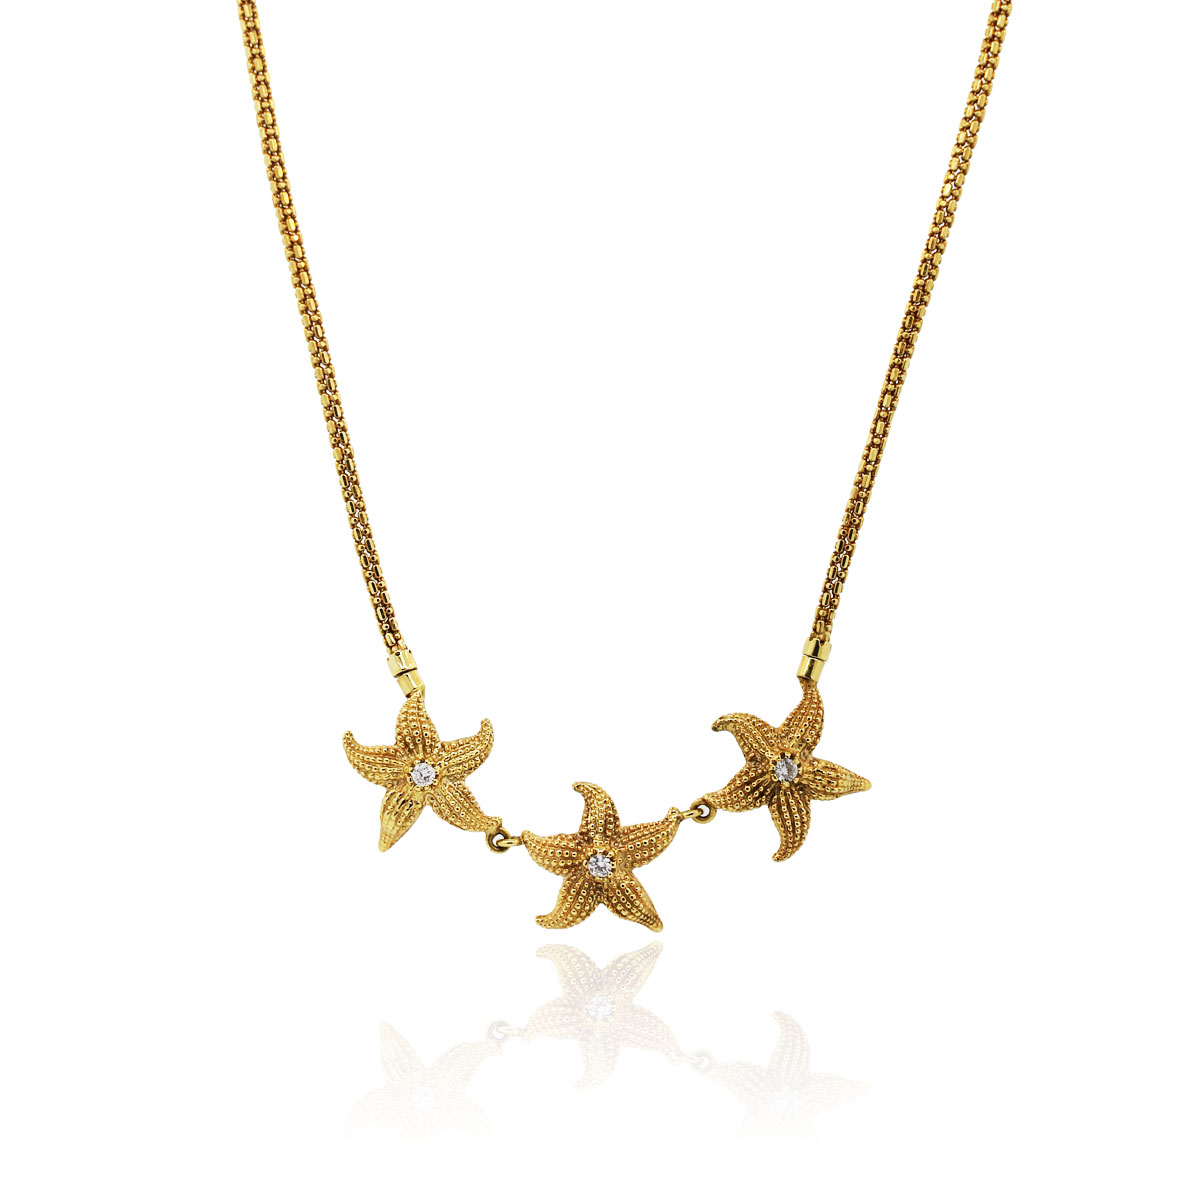 14k Yellow Gold 30ctw Diamond Starfish Necklace. Expensive Watches. Upside Down Triangle Necklace. Rose Gold Anniversary Band. Unique Charm Necklace. Radiant Cut Engagement Rings. Cross Necklace. Circle Diamond Wedding Rings. Youth Watches